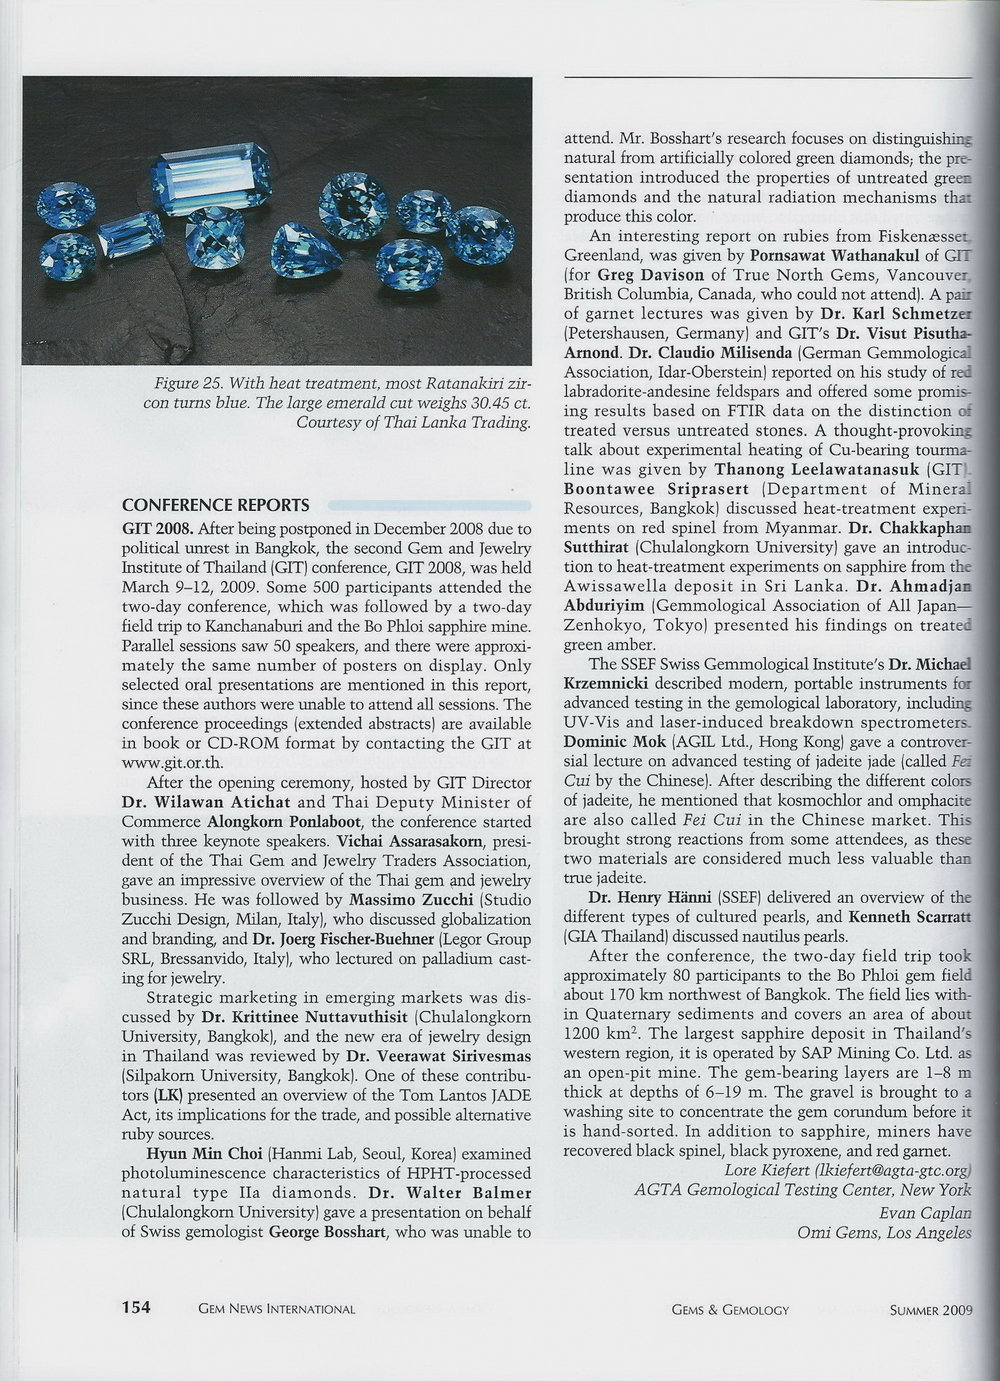 Gems & Gemology - Summer 2009 p.3